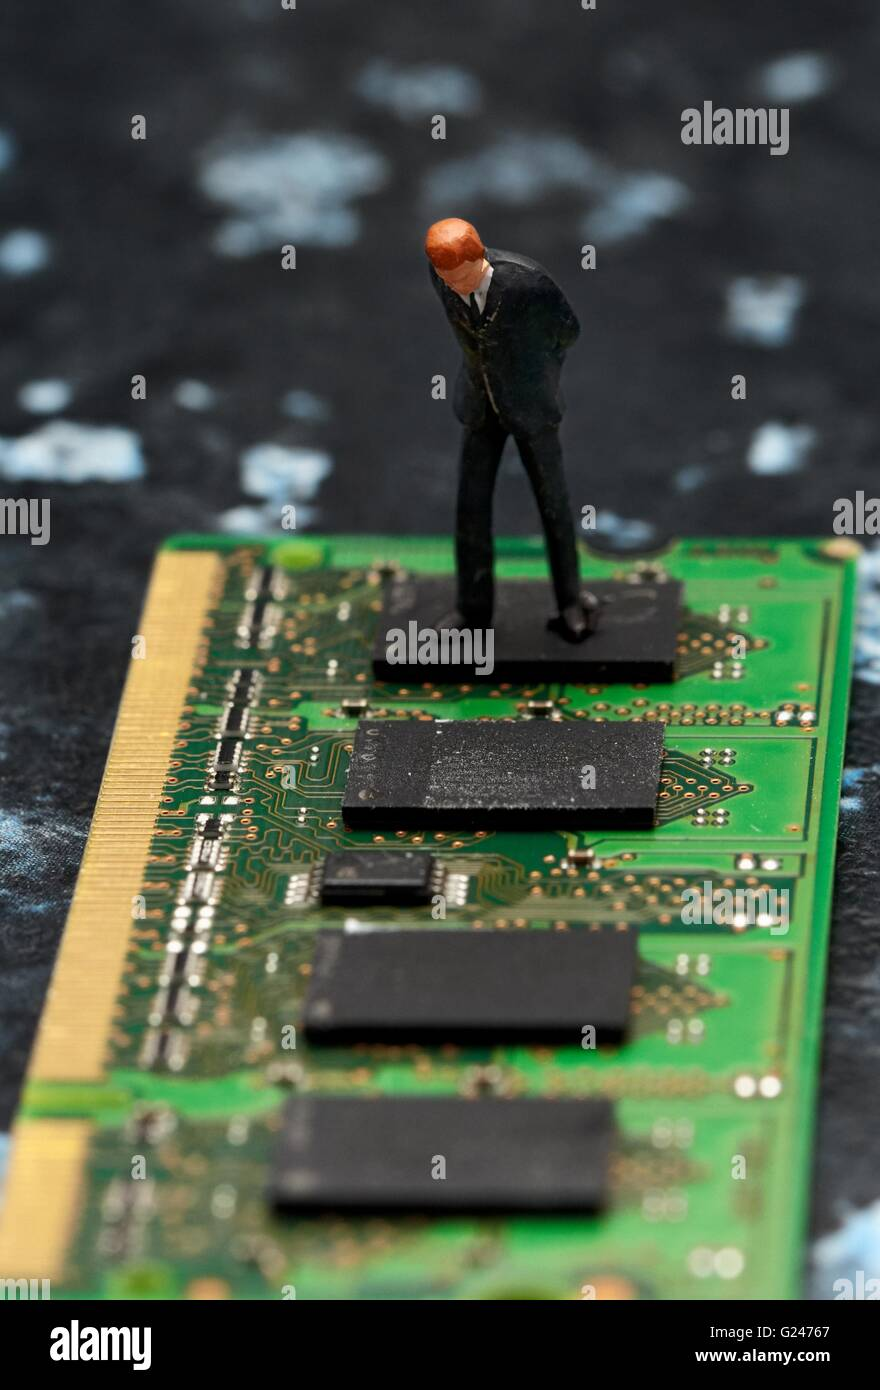 A miniature figurine businessman looking down on computer chip memory. - Stock Image